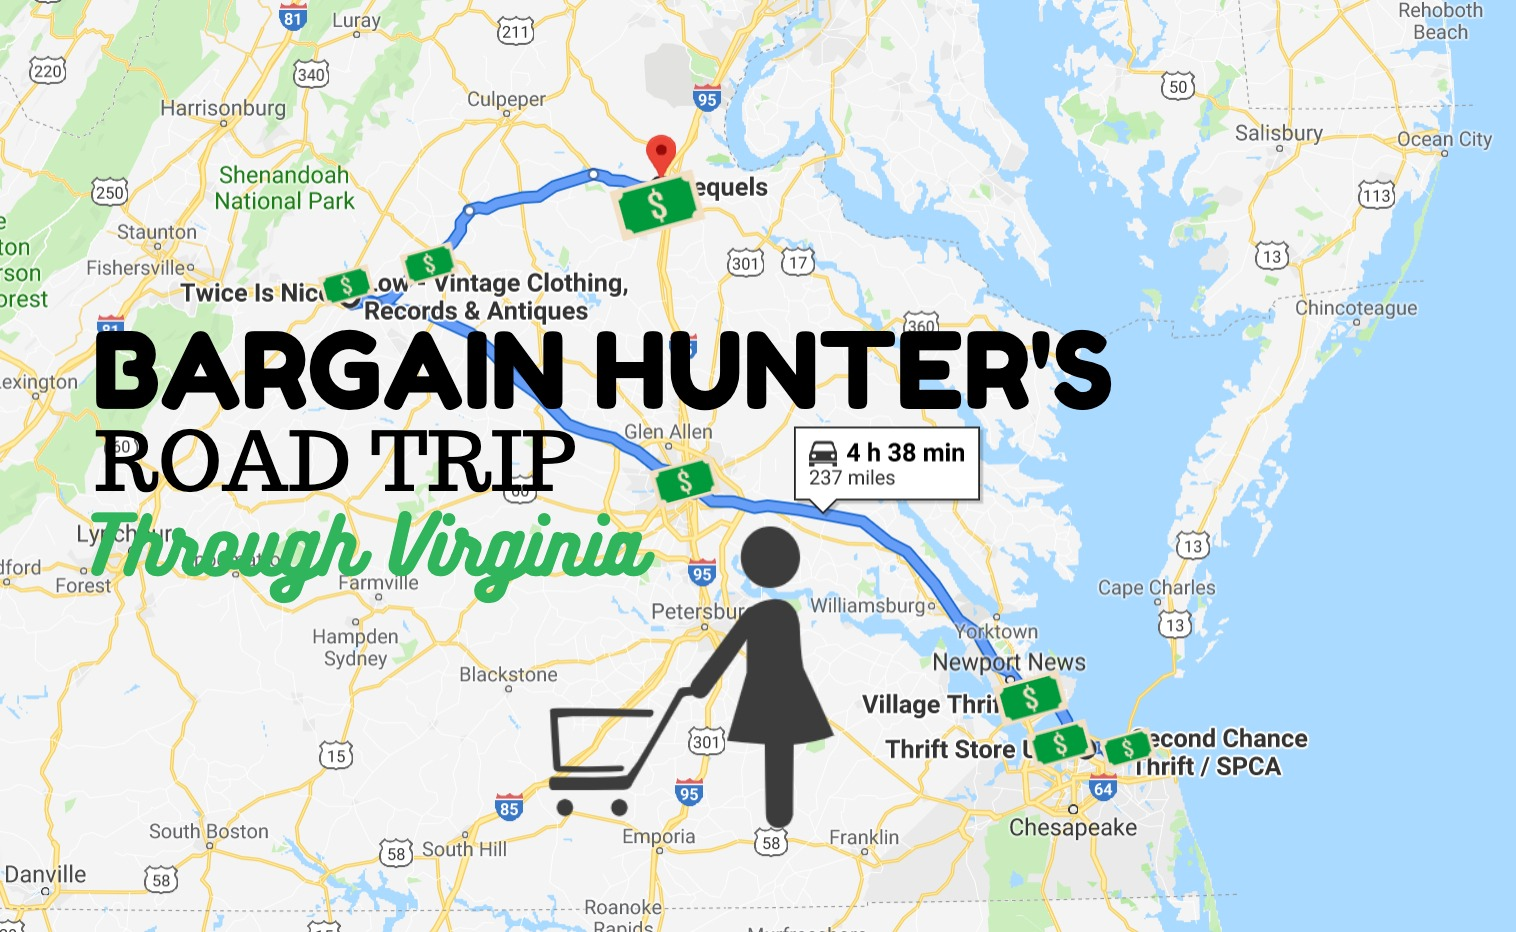 Virginia's Bargain Hunters Road Trip Takes You To The Best